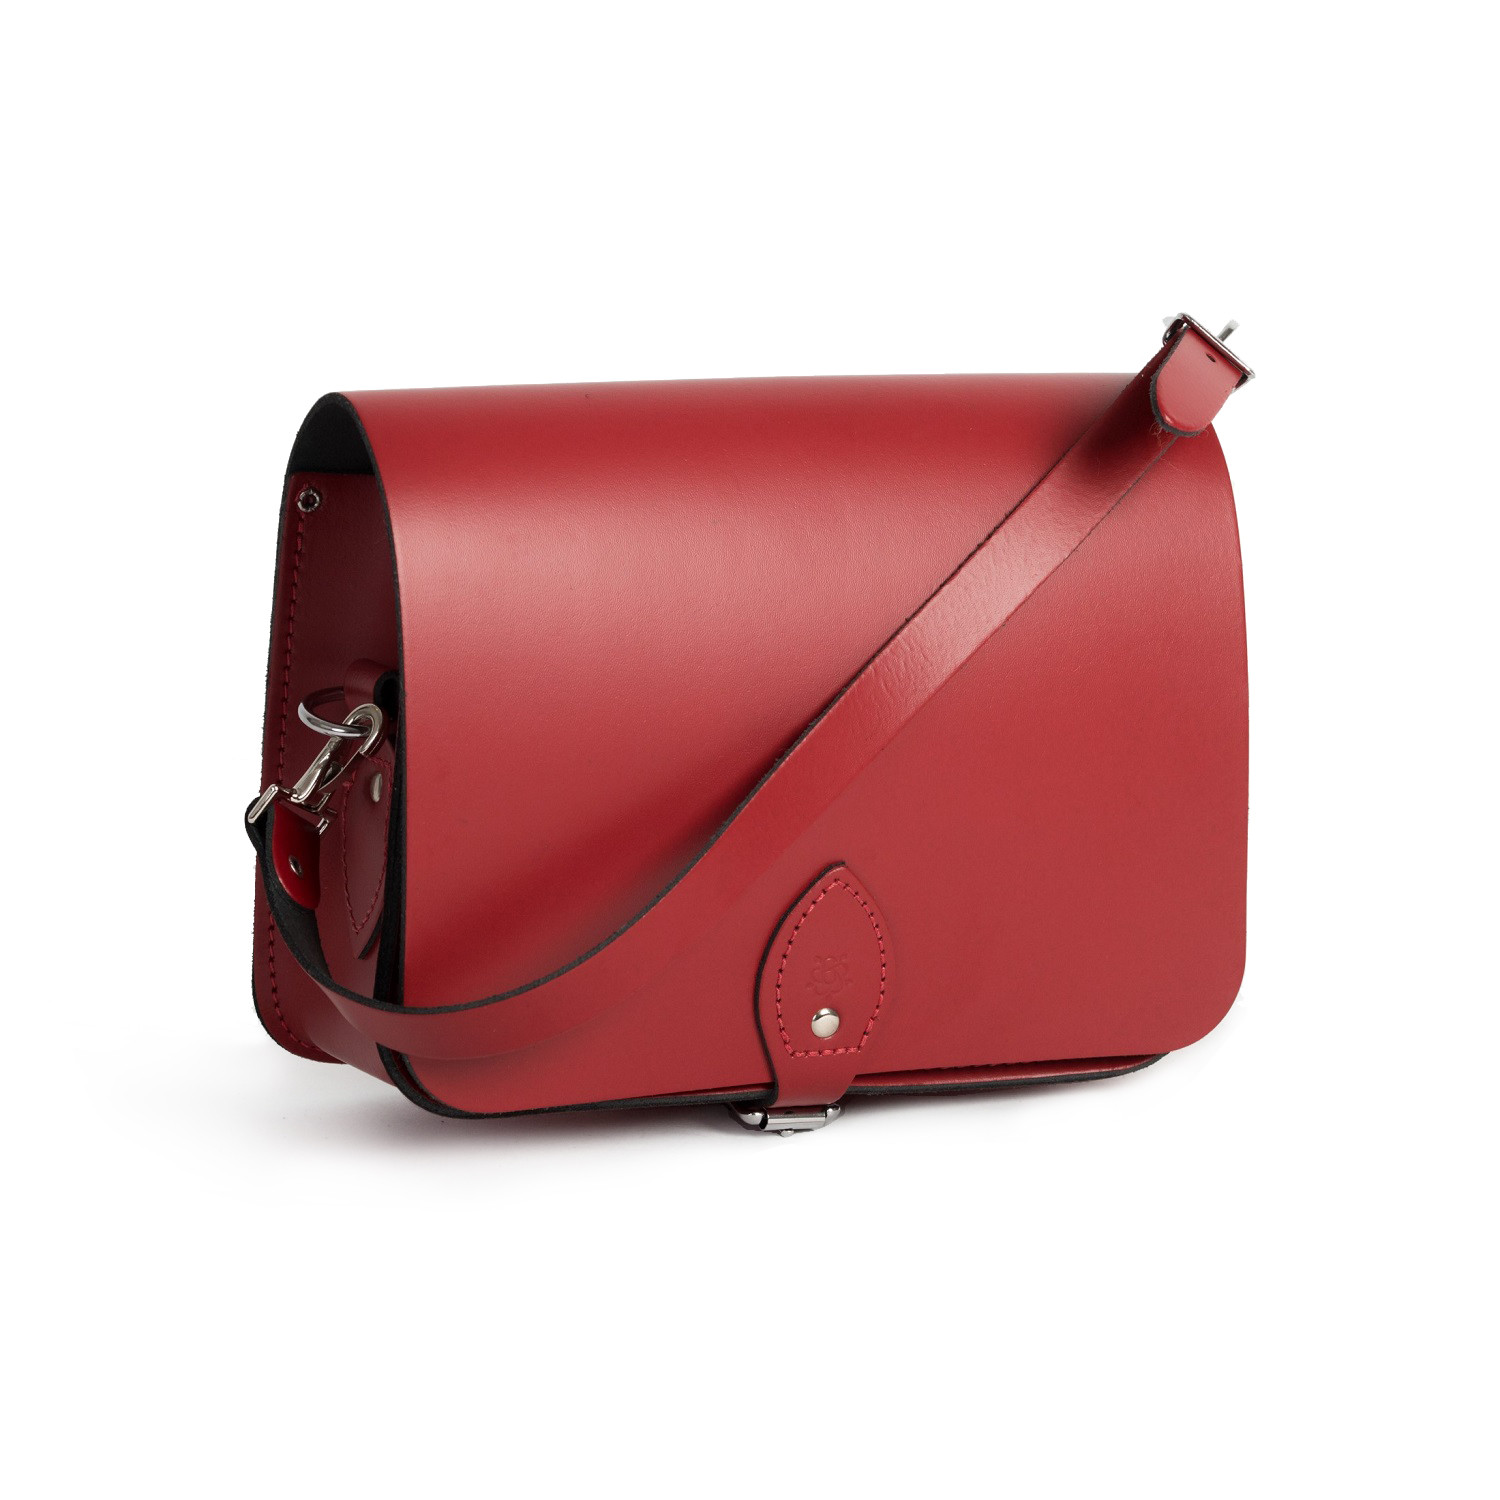 Riley Premium Leather Saddle Bag in Scarlet Red